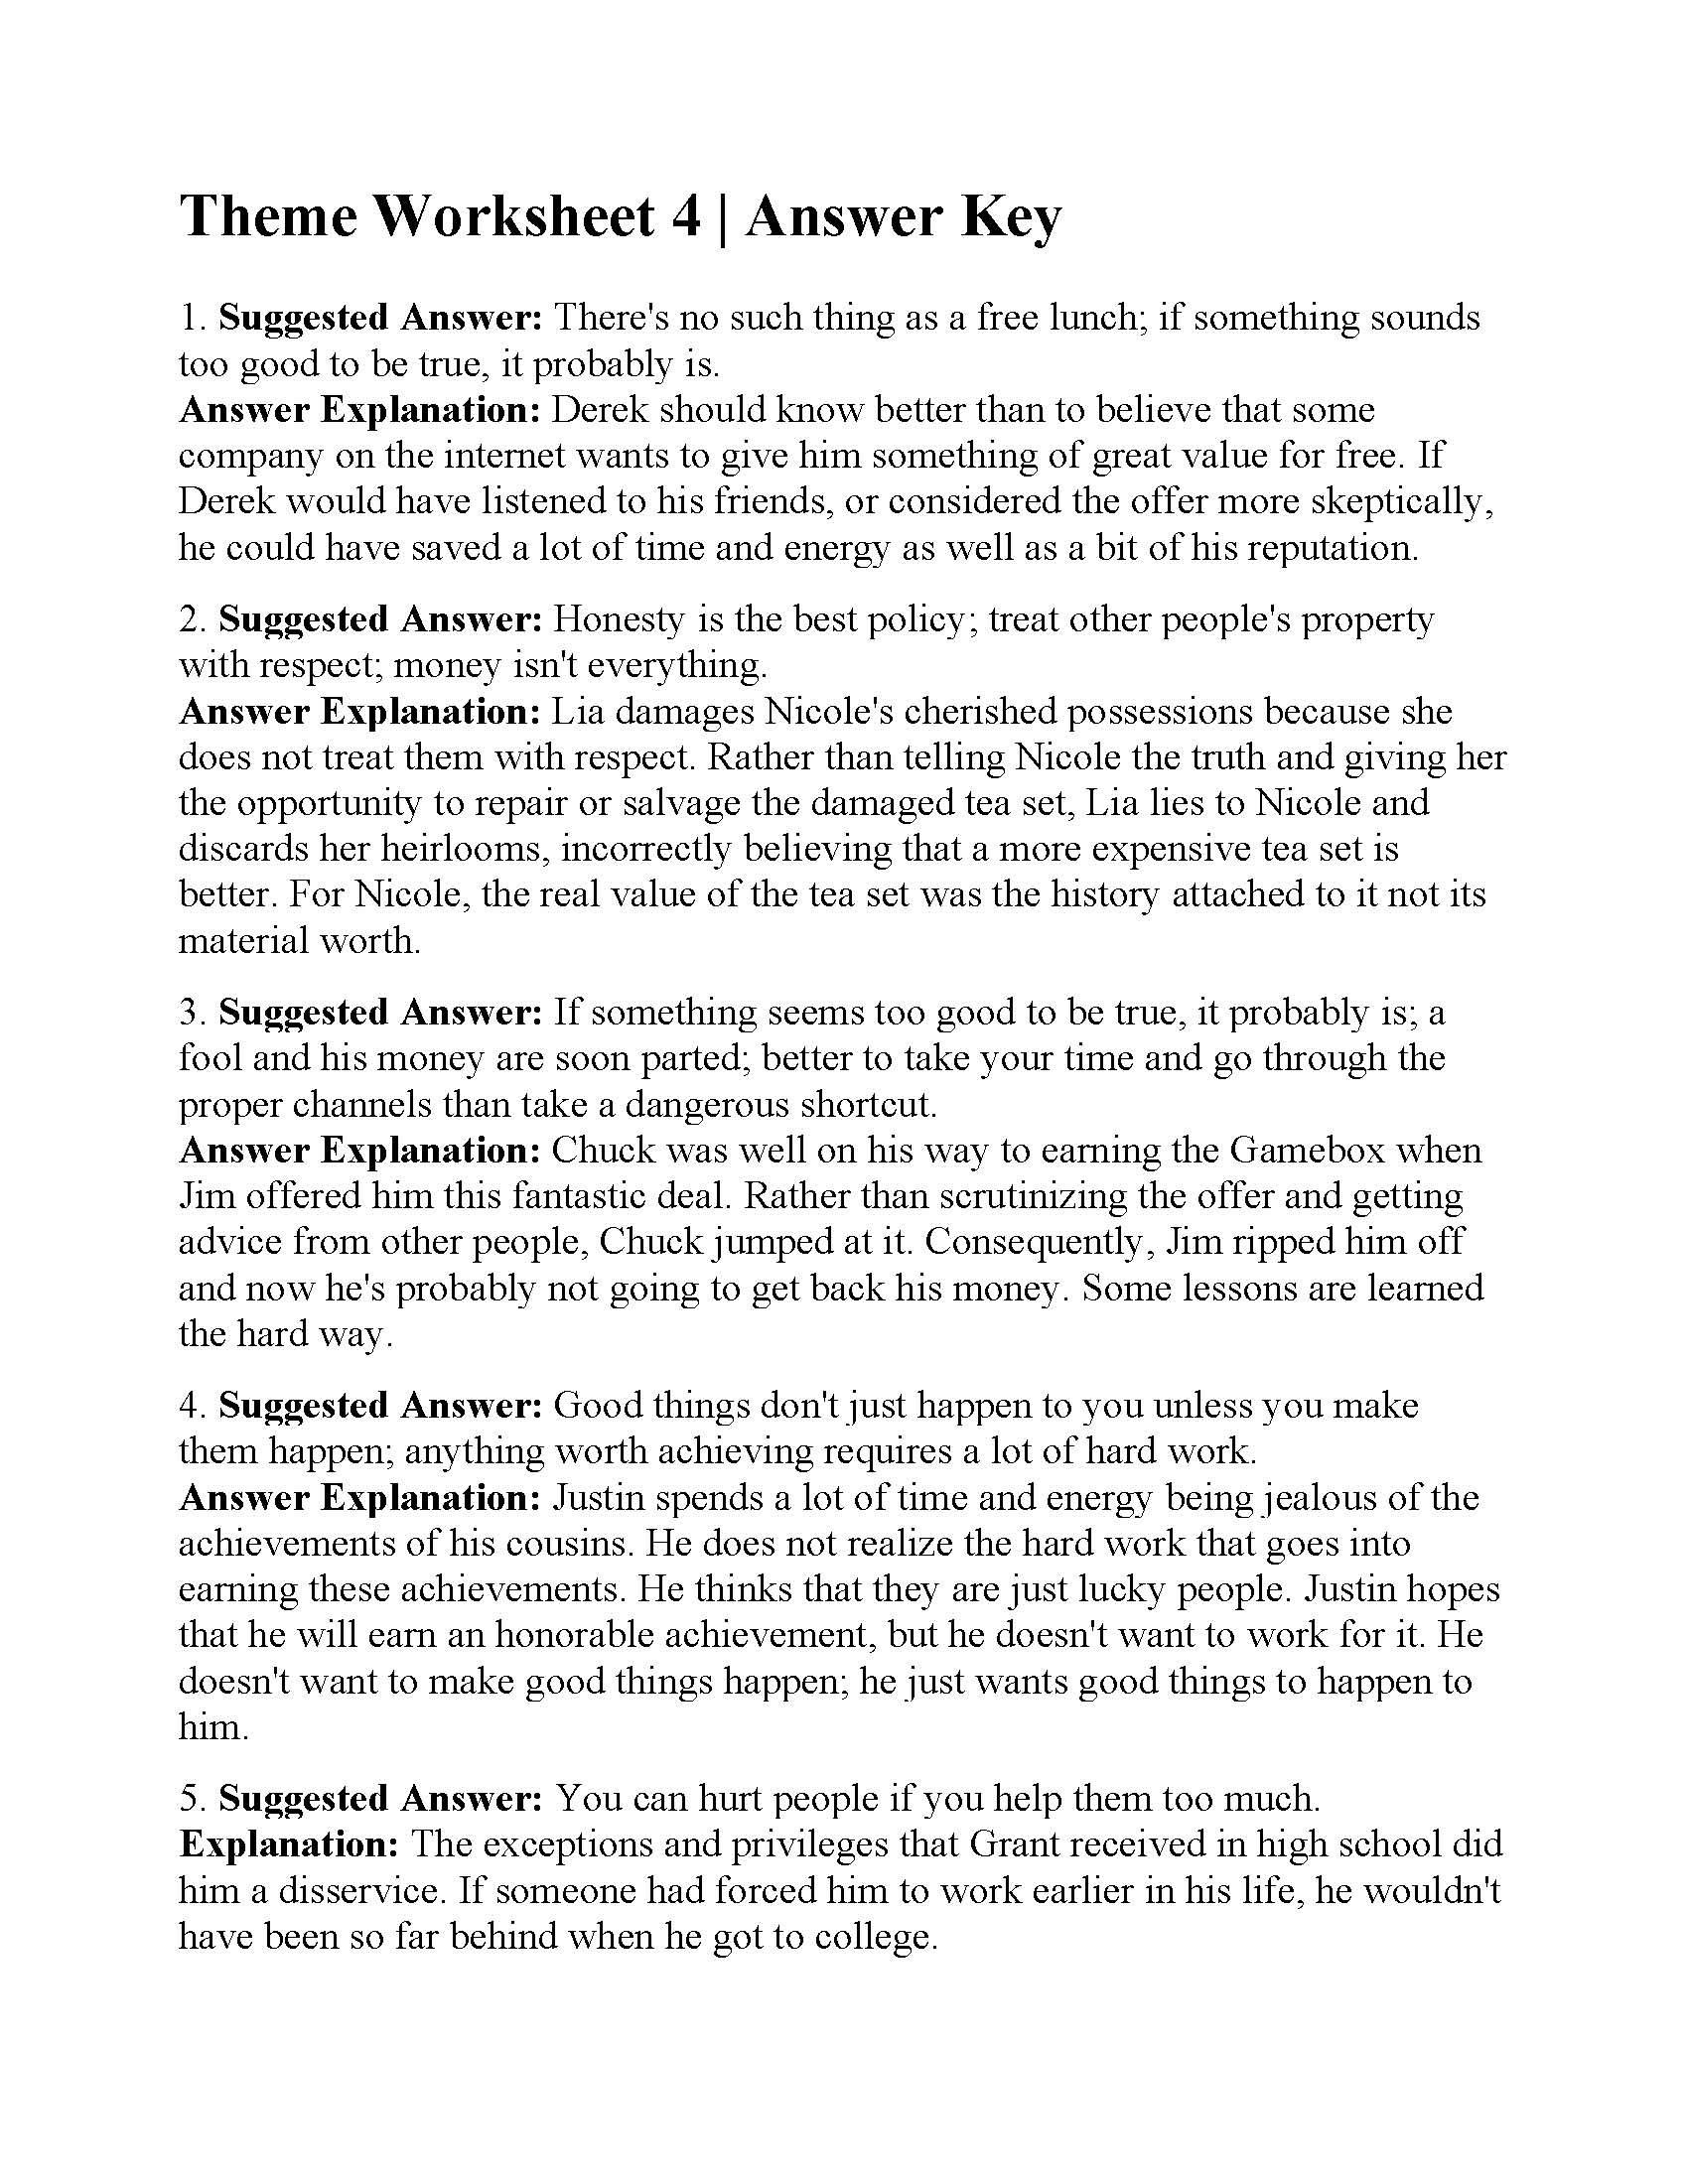 Theme Worksheets Middle School Pdf This is the Answer Key for the theme Worksheet 4